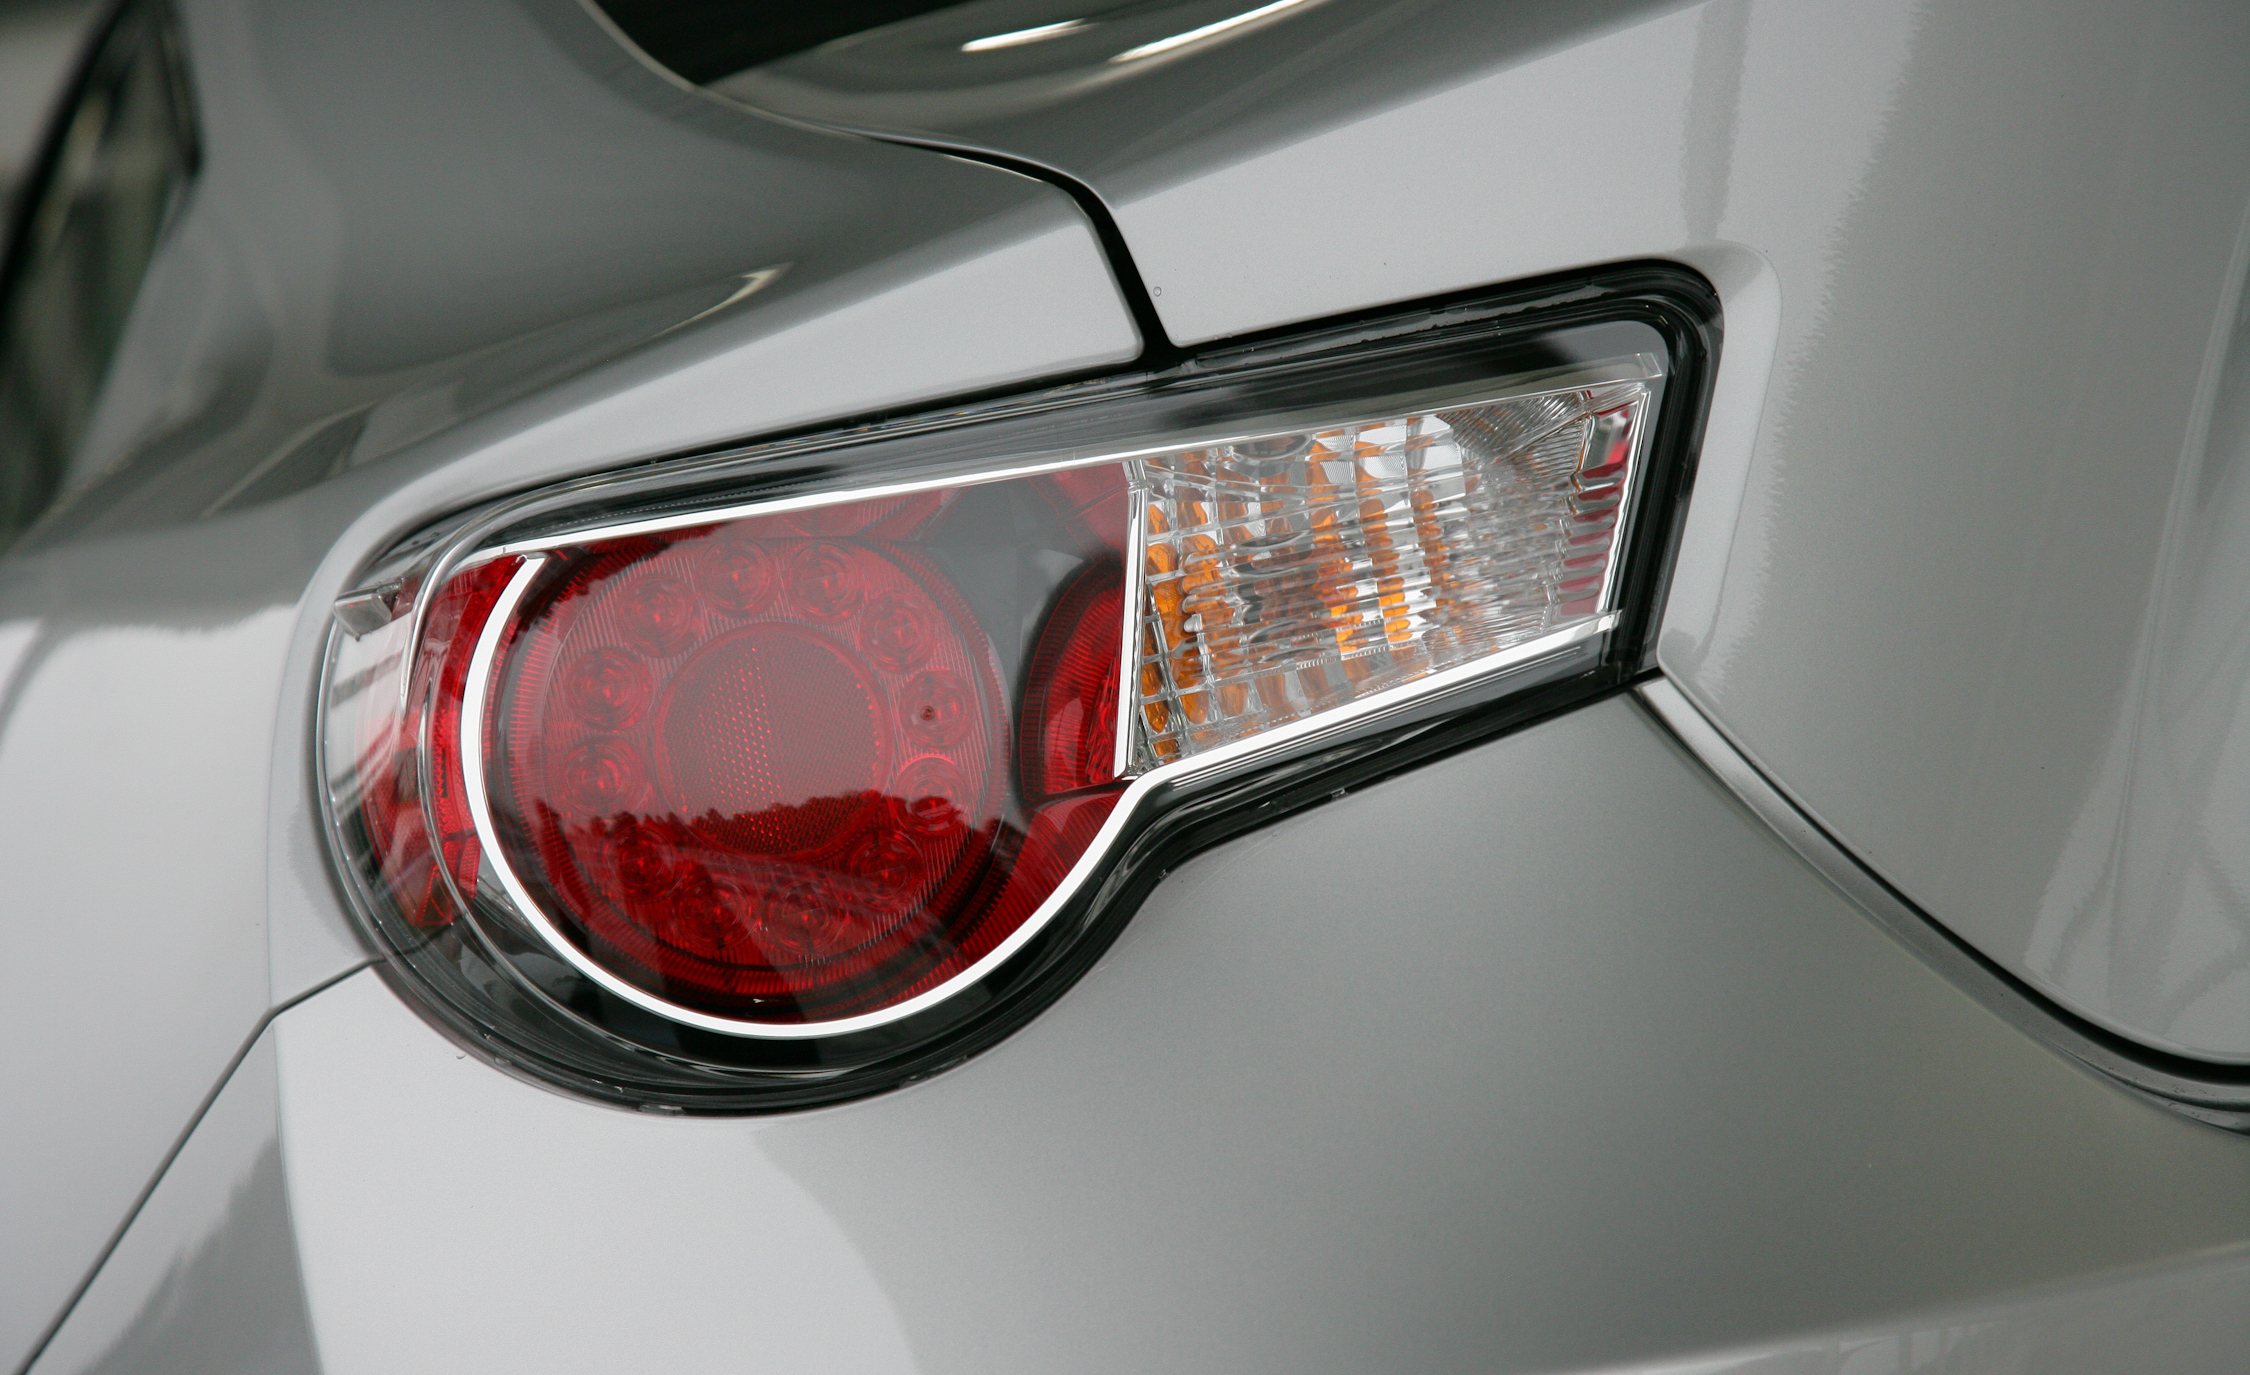 2013 Scion FR S Exterior View Taillight (Photo 16 of 47)